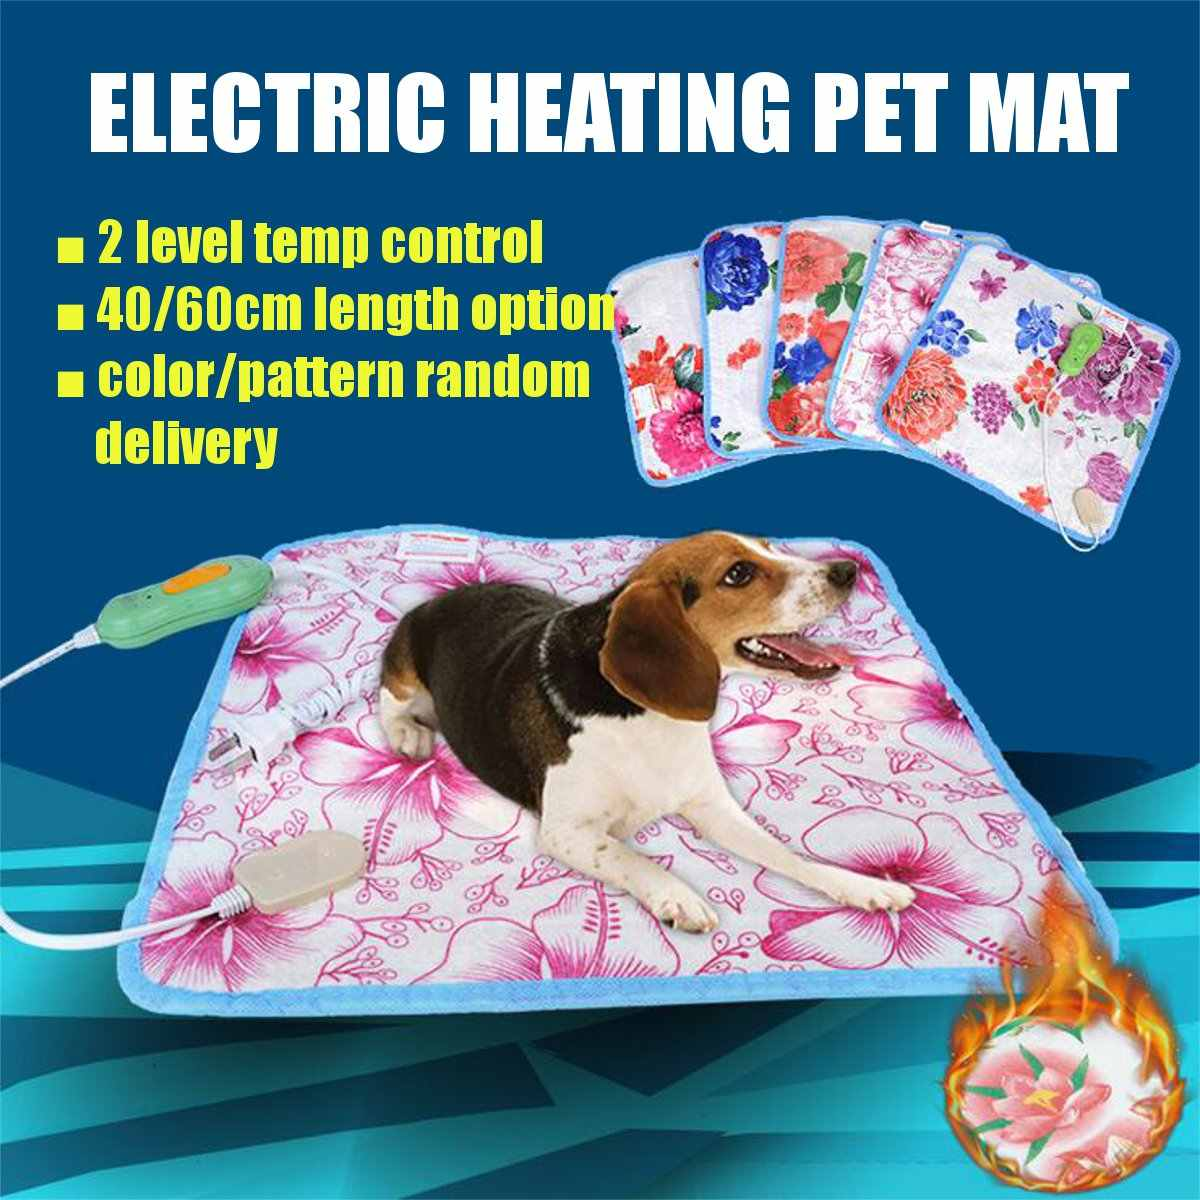 220v Electric Heating Pad Blanket 40x40 60cm Pet Mat Bed Cat Dog Winter Warmer Pad Home Office Chair Heated Mat Random Patterns Electric Heating Pads Aliexpress